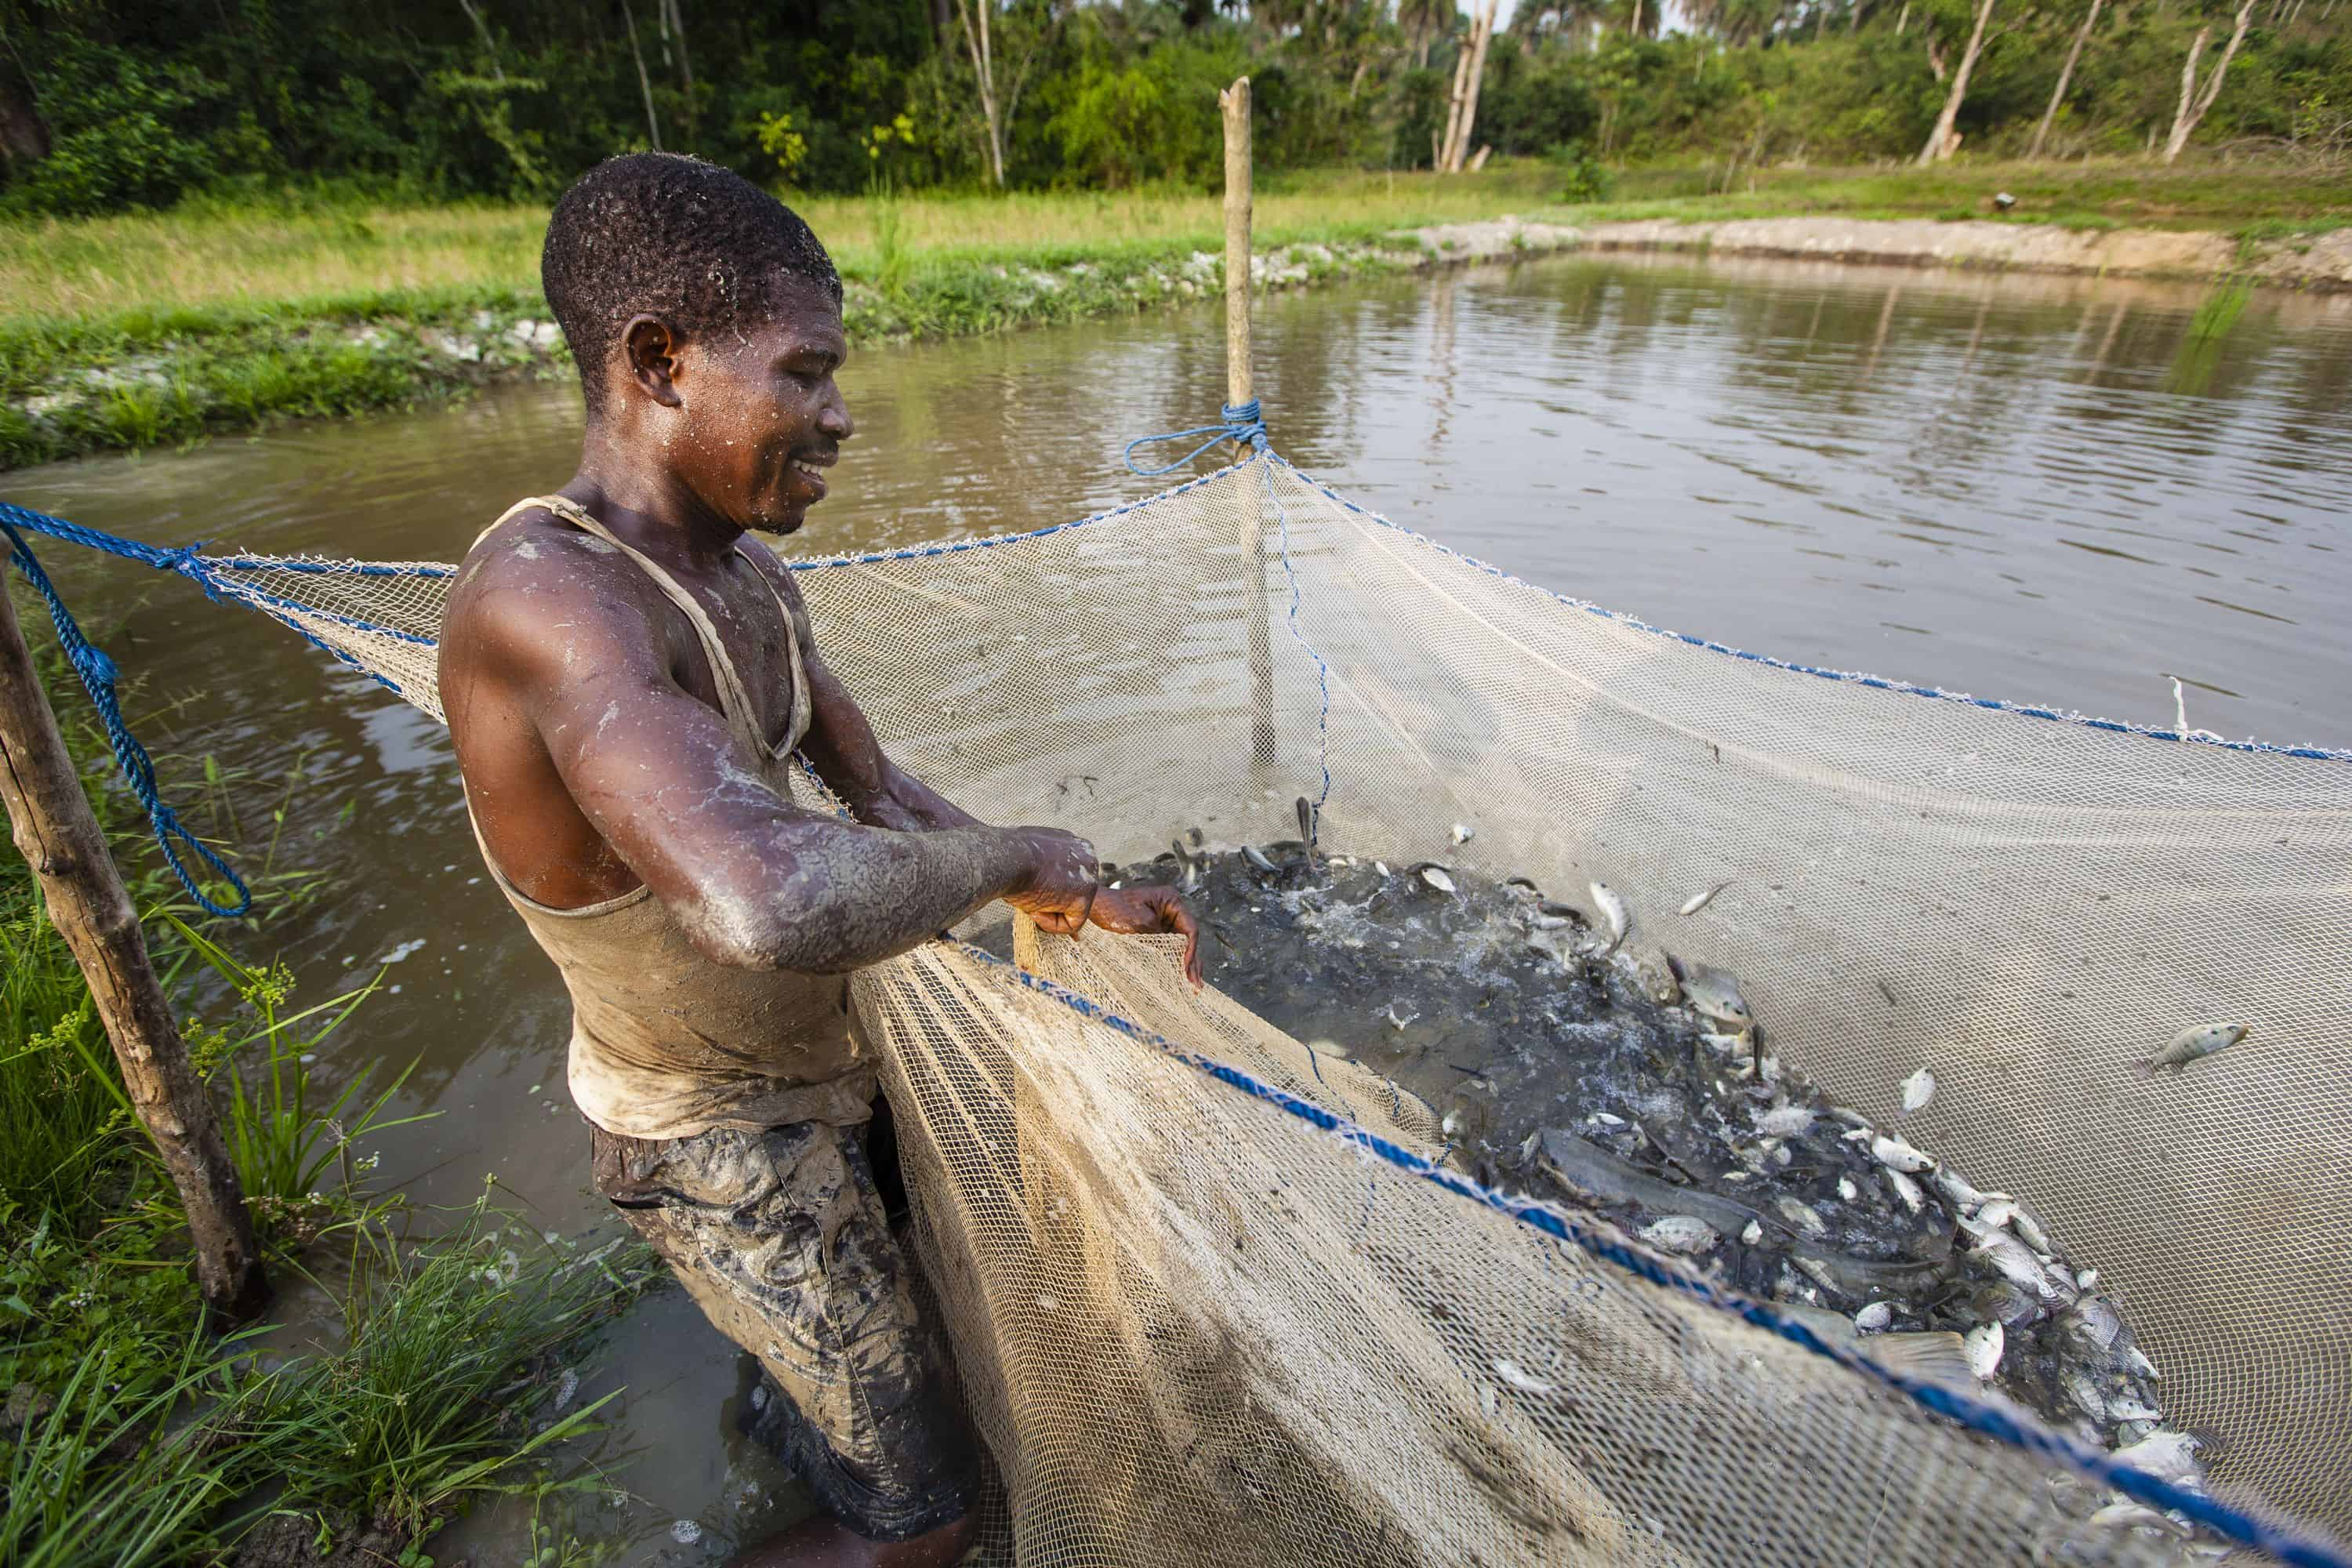 Samaritan's Purse built the fish pond in Liberia to help families in need.